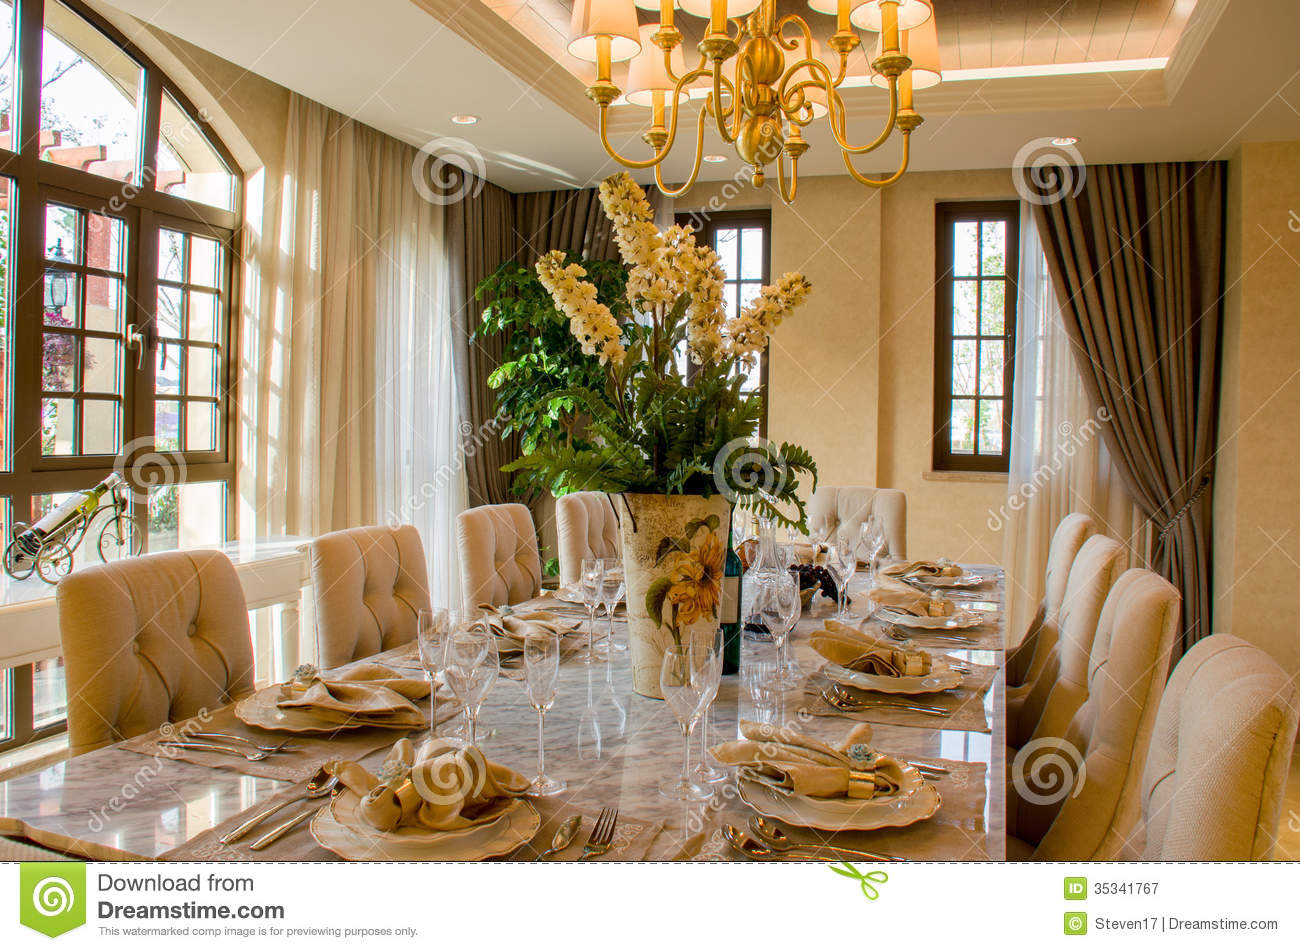 Dinining table royalty free stock photography image for Beautiful sitting rooms